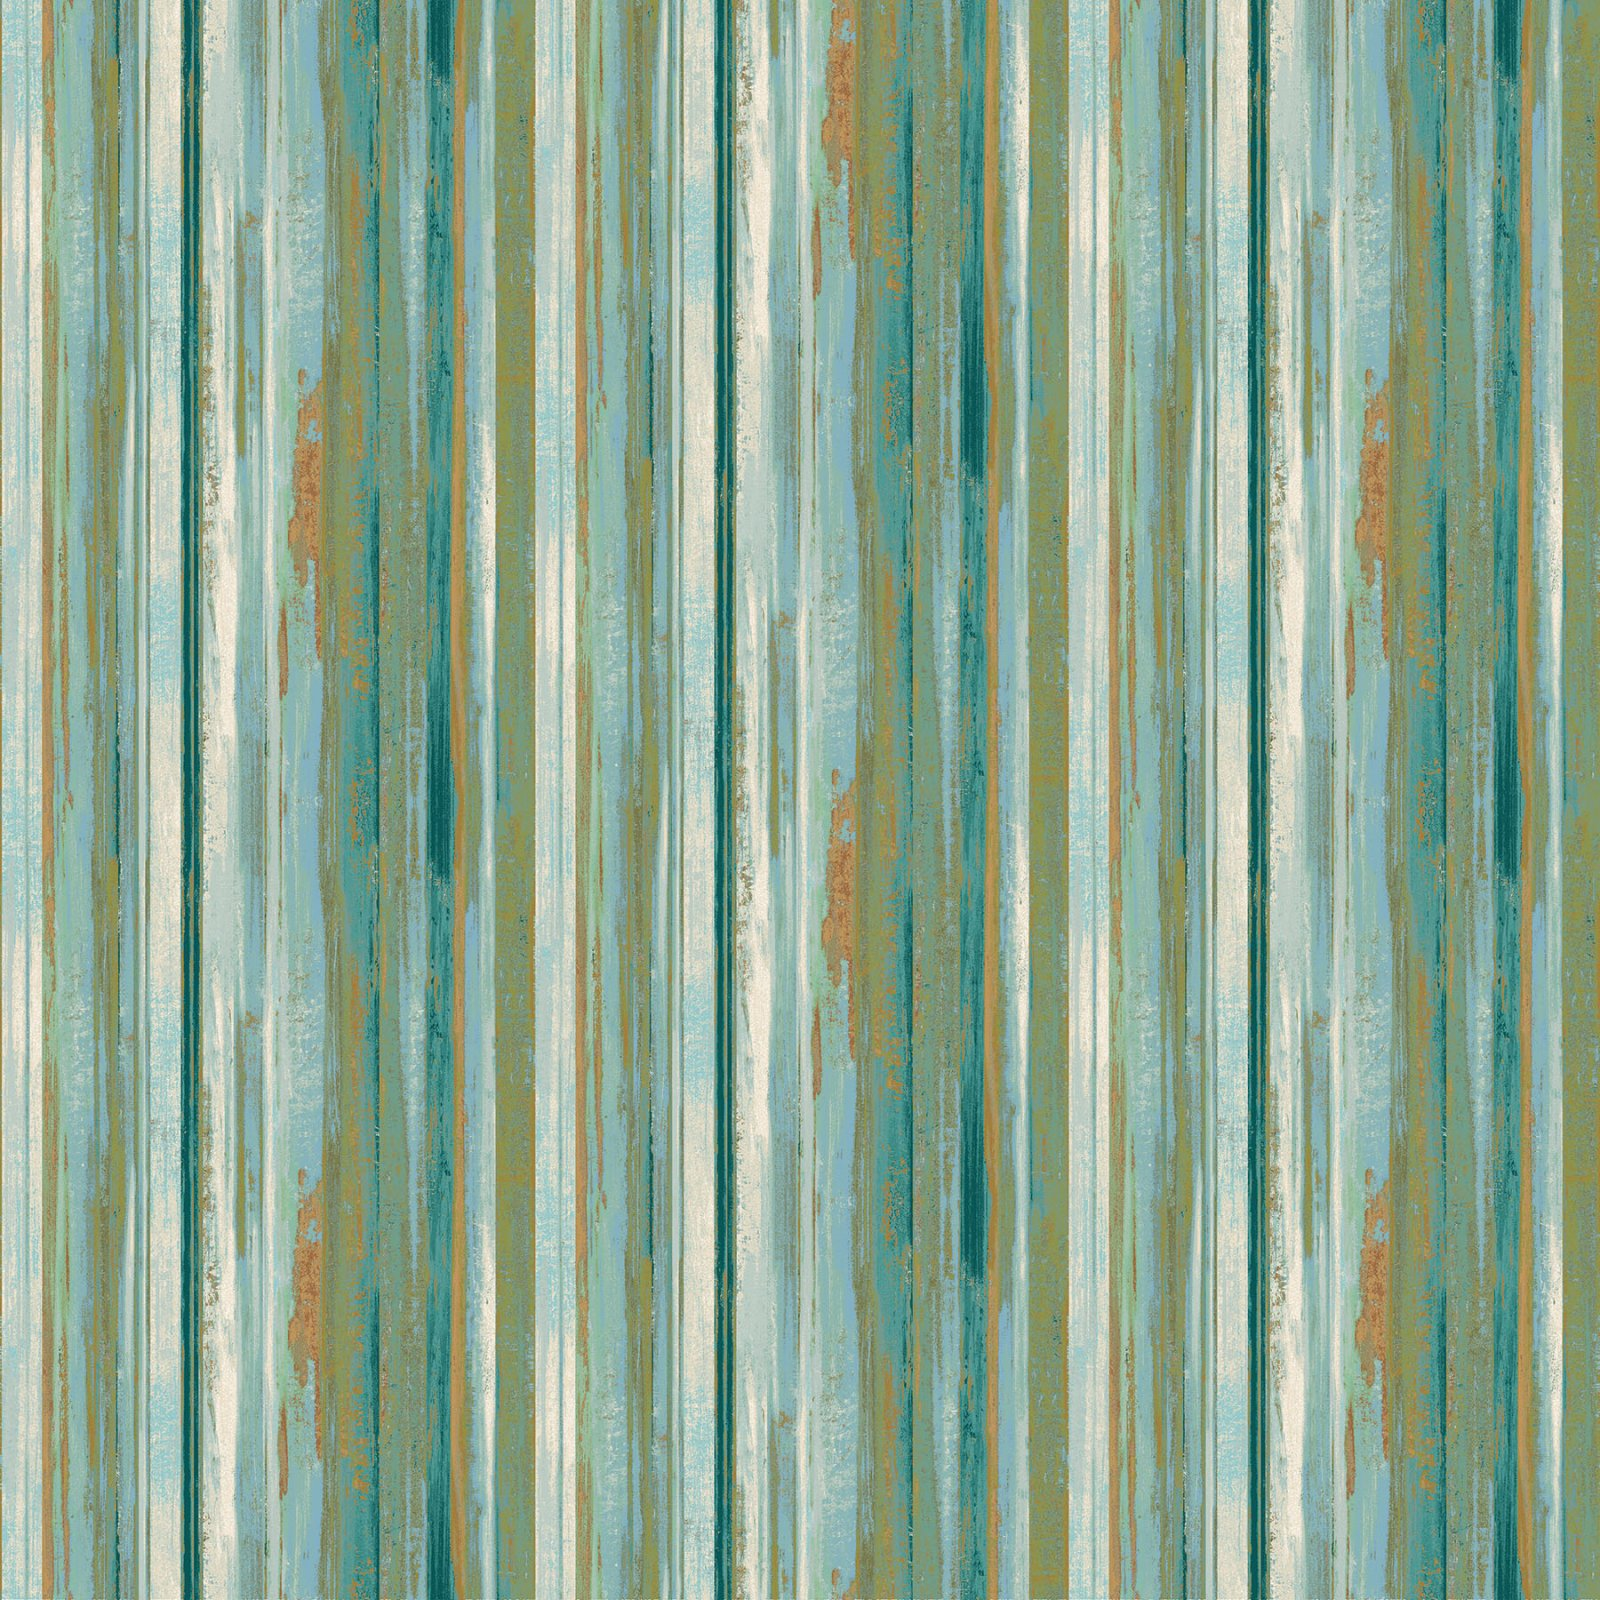 Urban Reflections Teal Multi strip